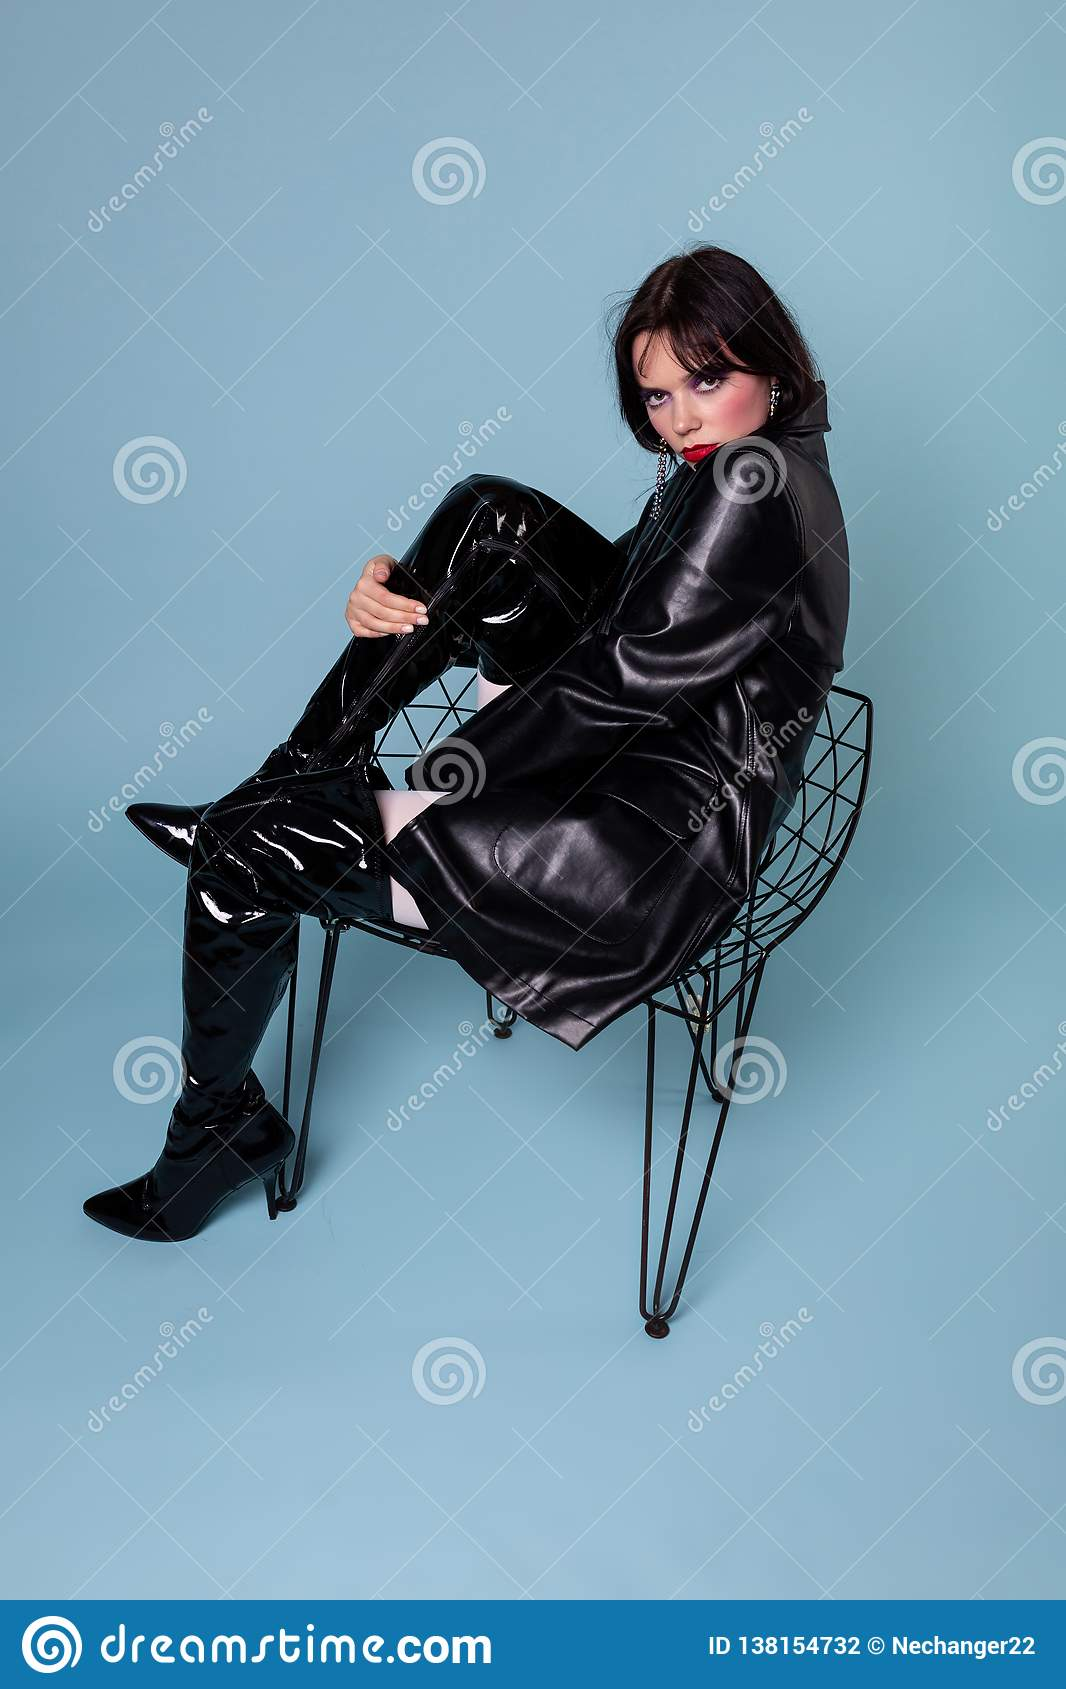 Gothic girl wearing black dress and black boots with black short hair